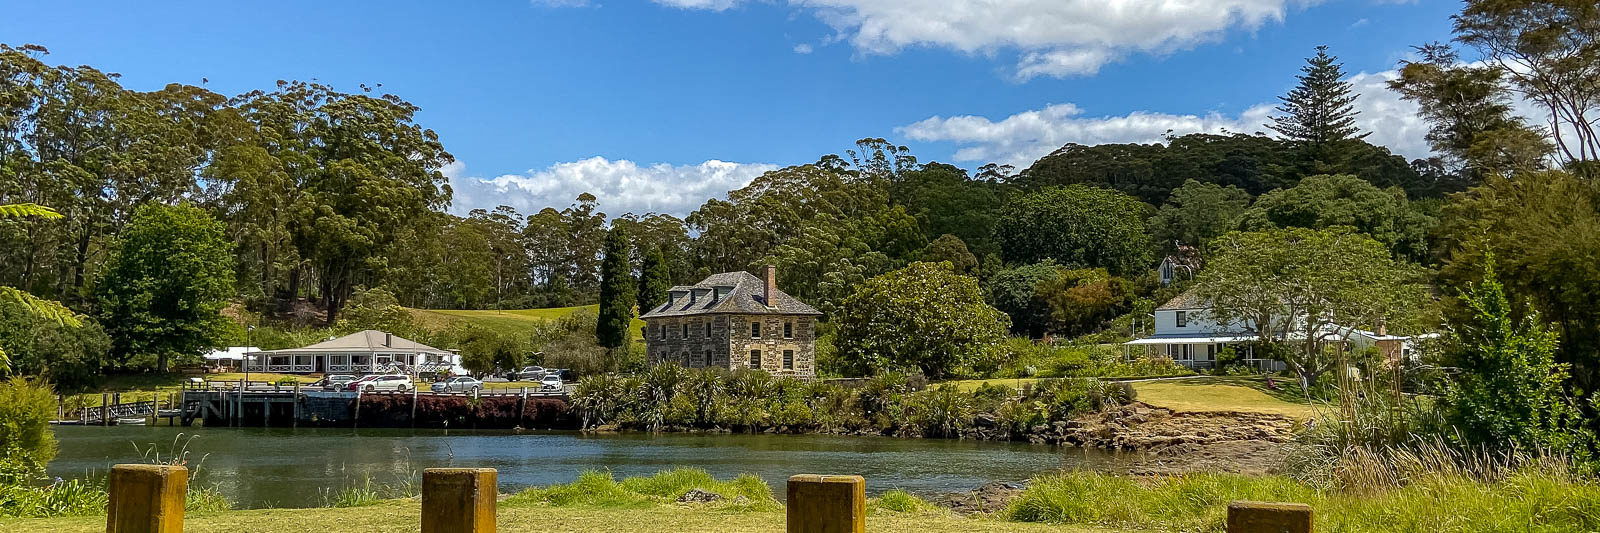 Kerikeri mission station seen from across the Kerikeri river. View includes the green grass on both sides, the blue river, the old stone store and the kemp house and the trees behind the buildings.